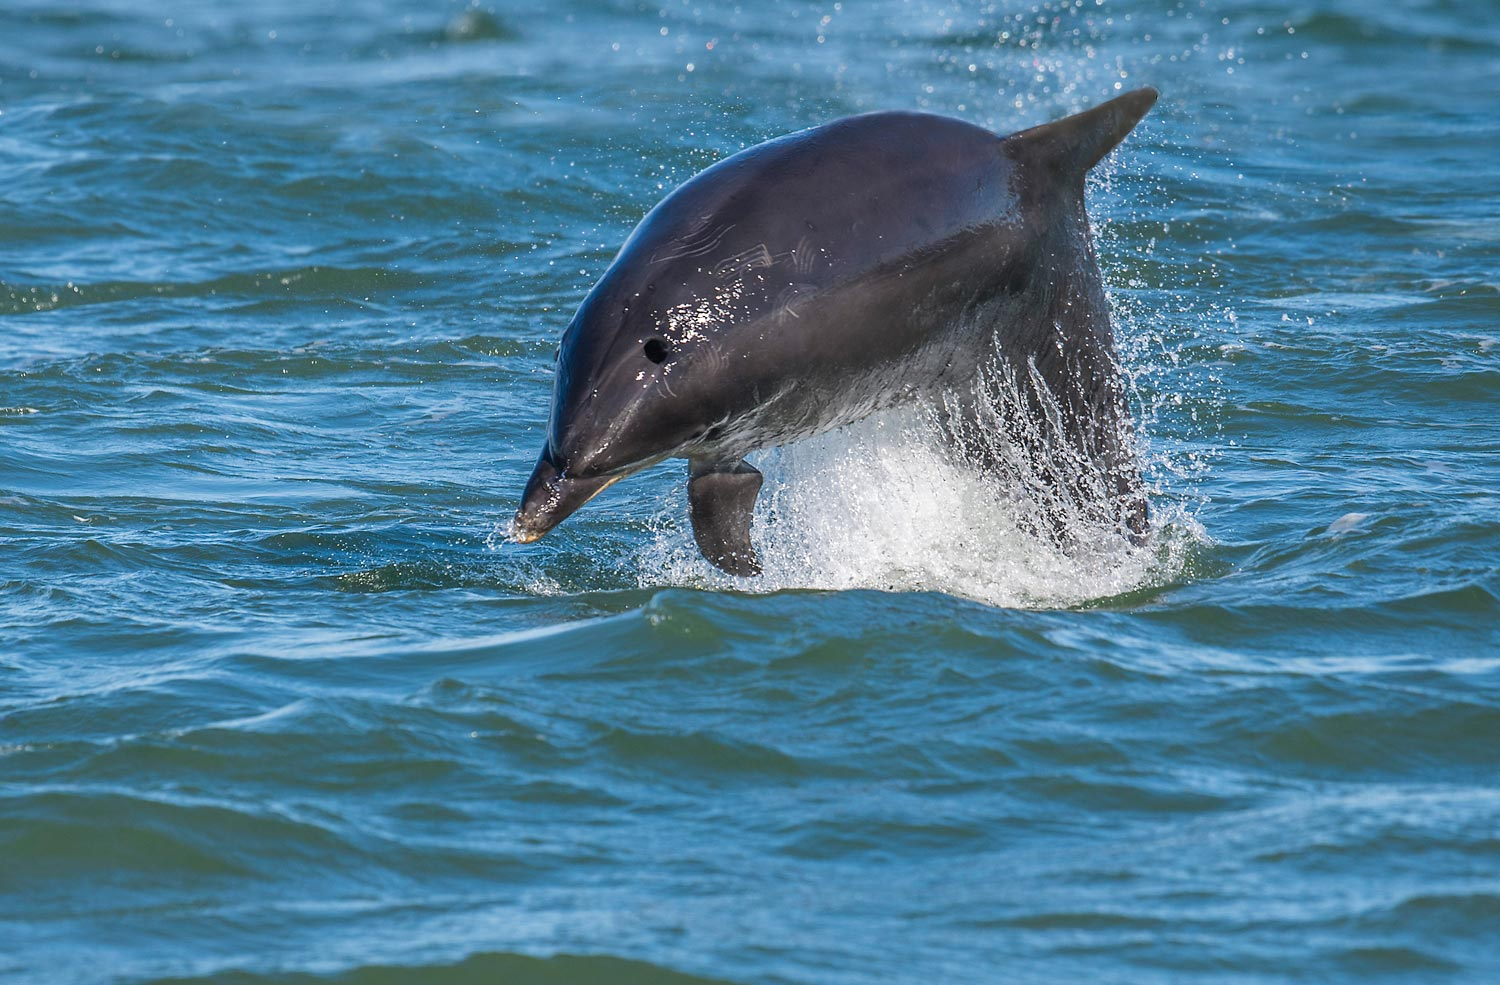 Watch our dolphins at play